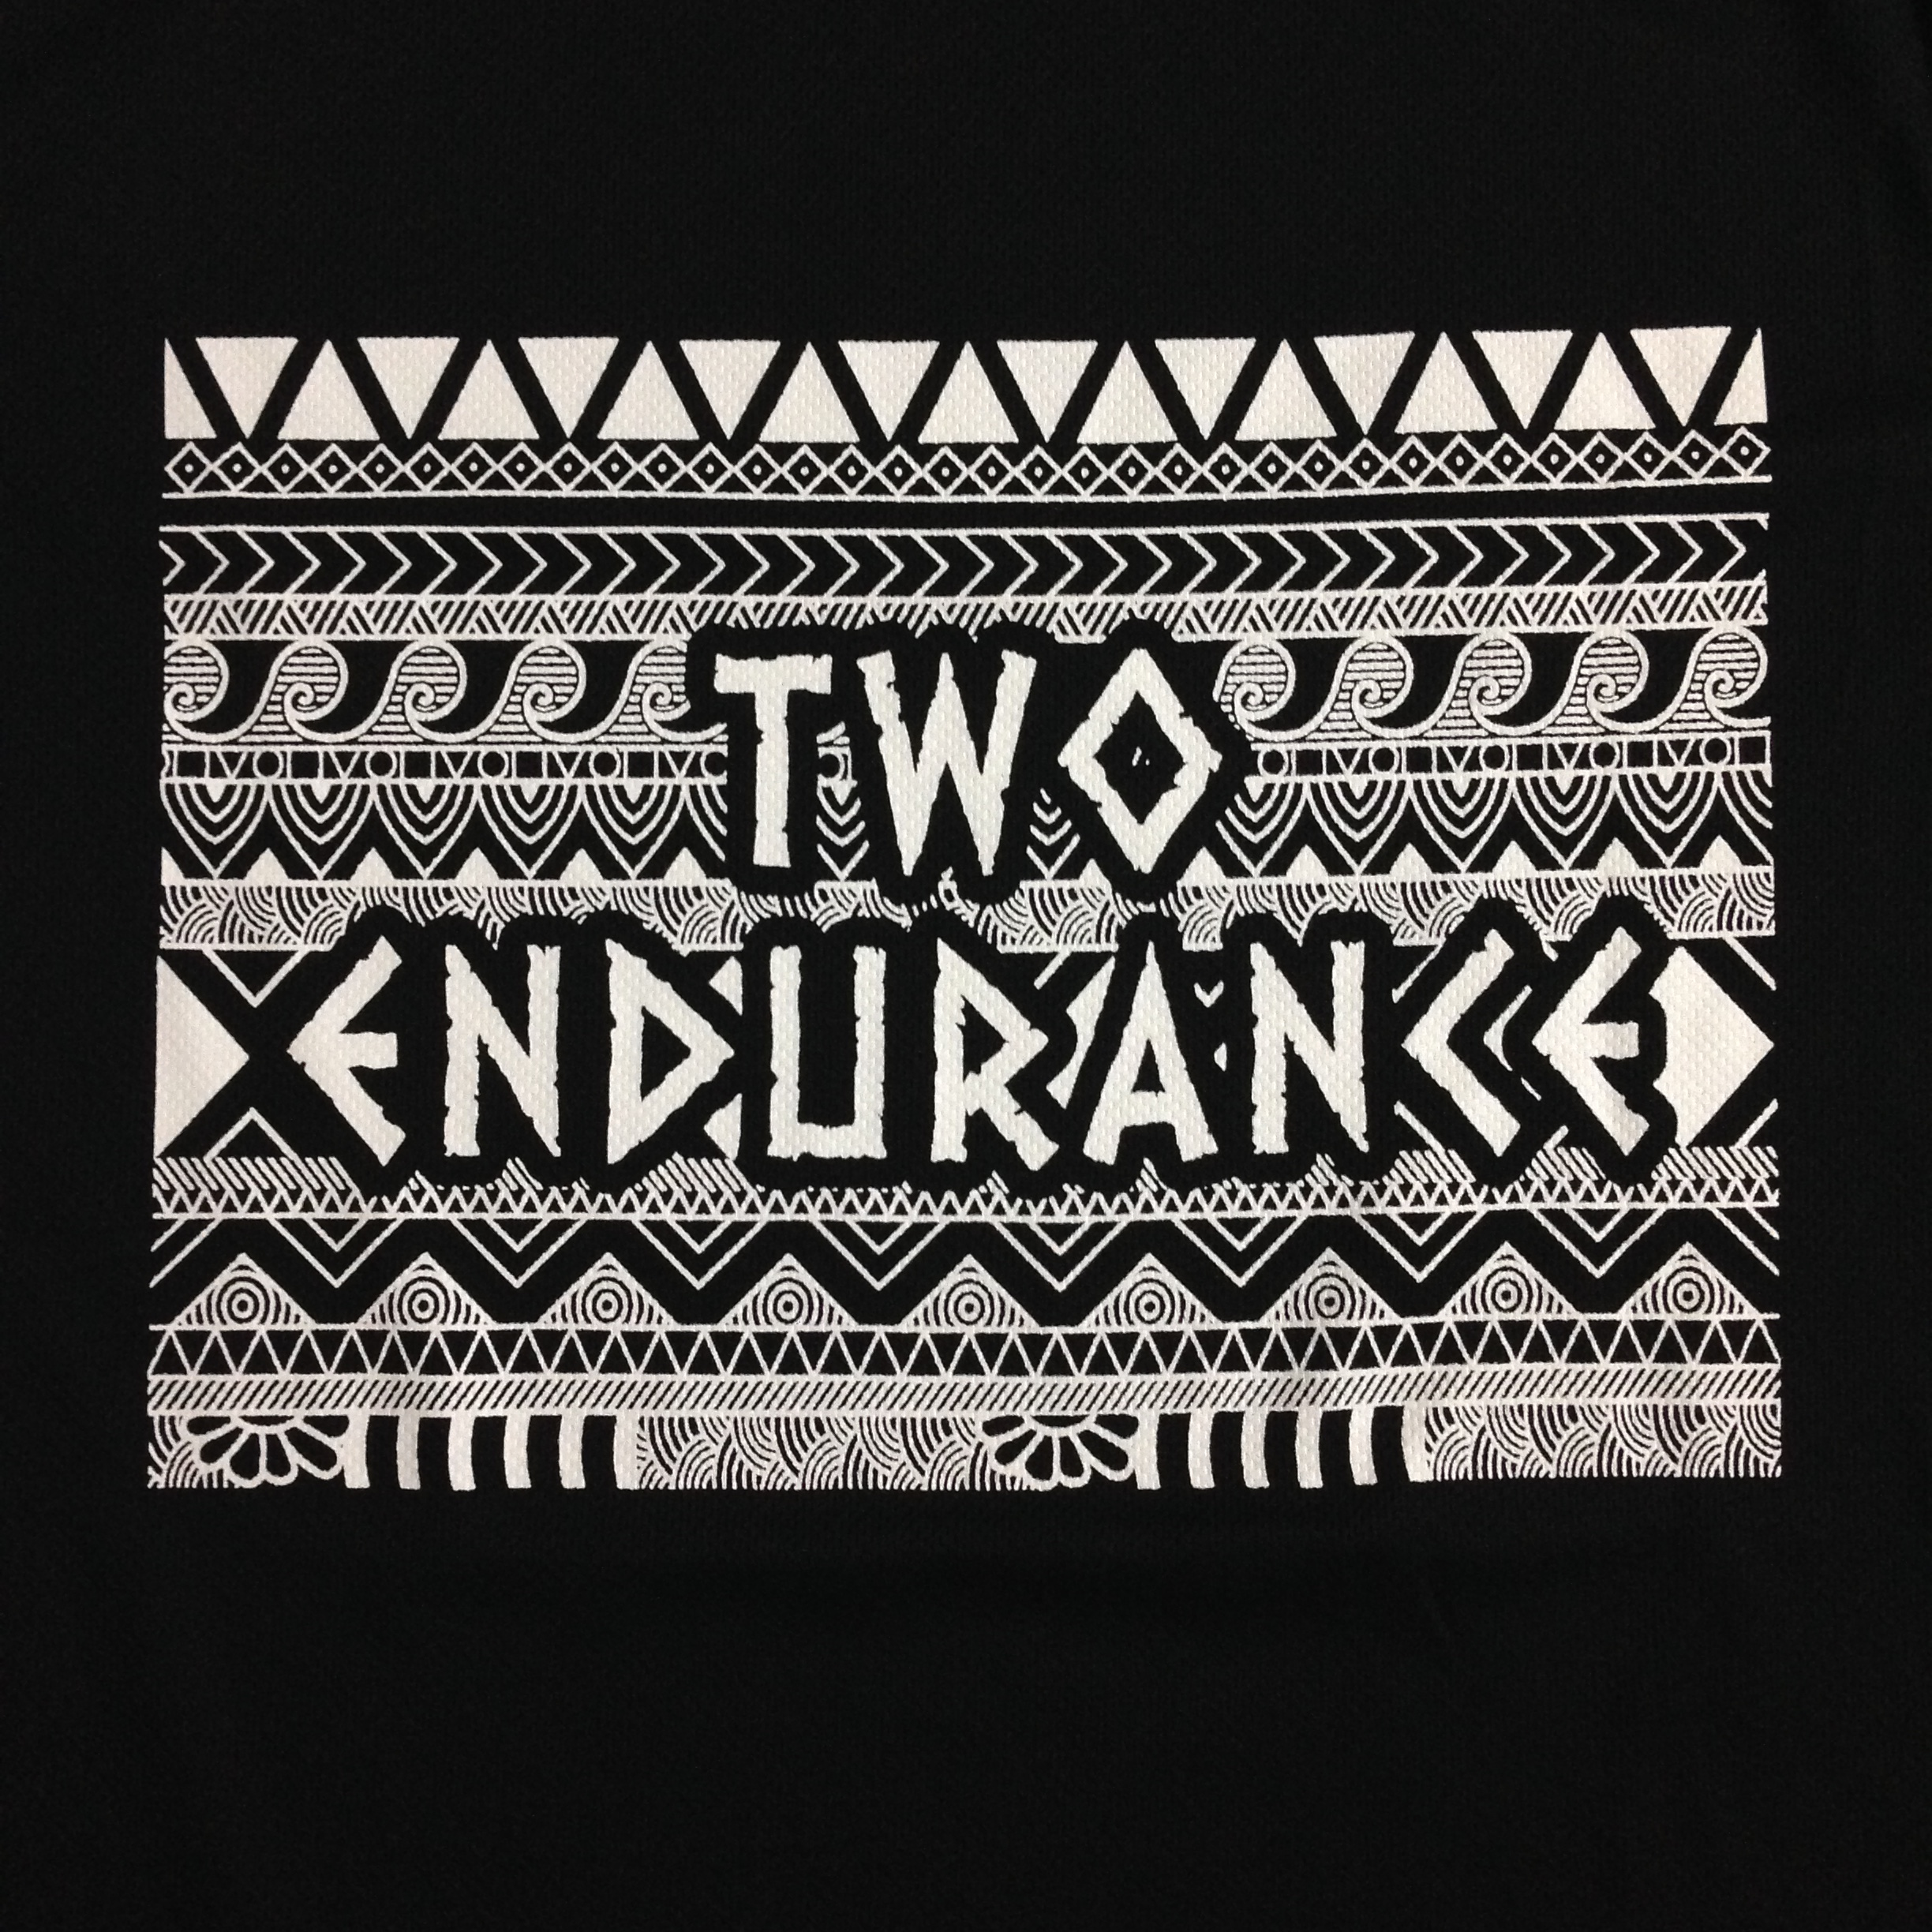 Detailed and complex design done in white silkscreen printing